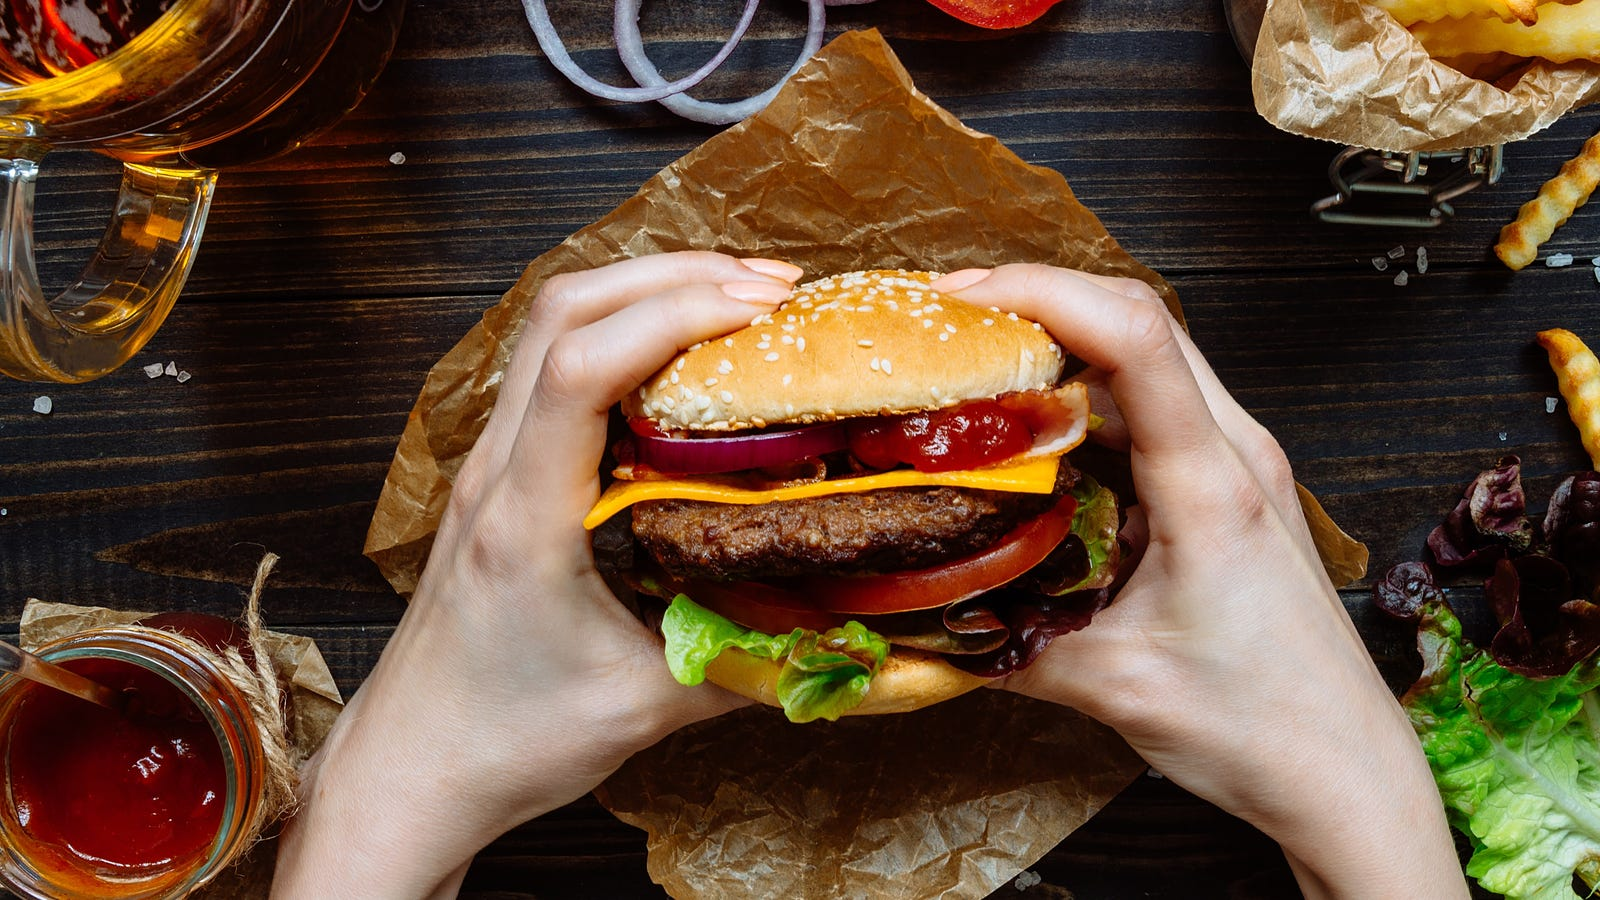 Where to Get Free Cheeseburgers For National Cheeseburger Day